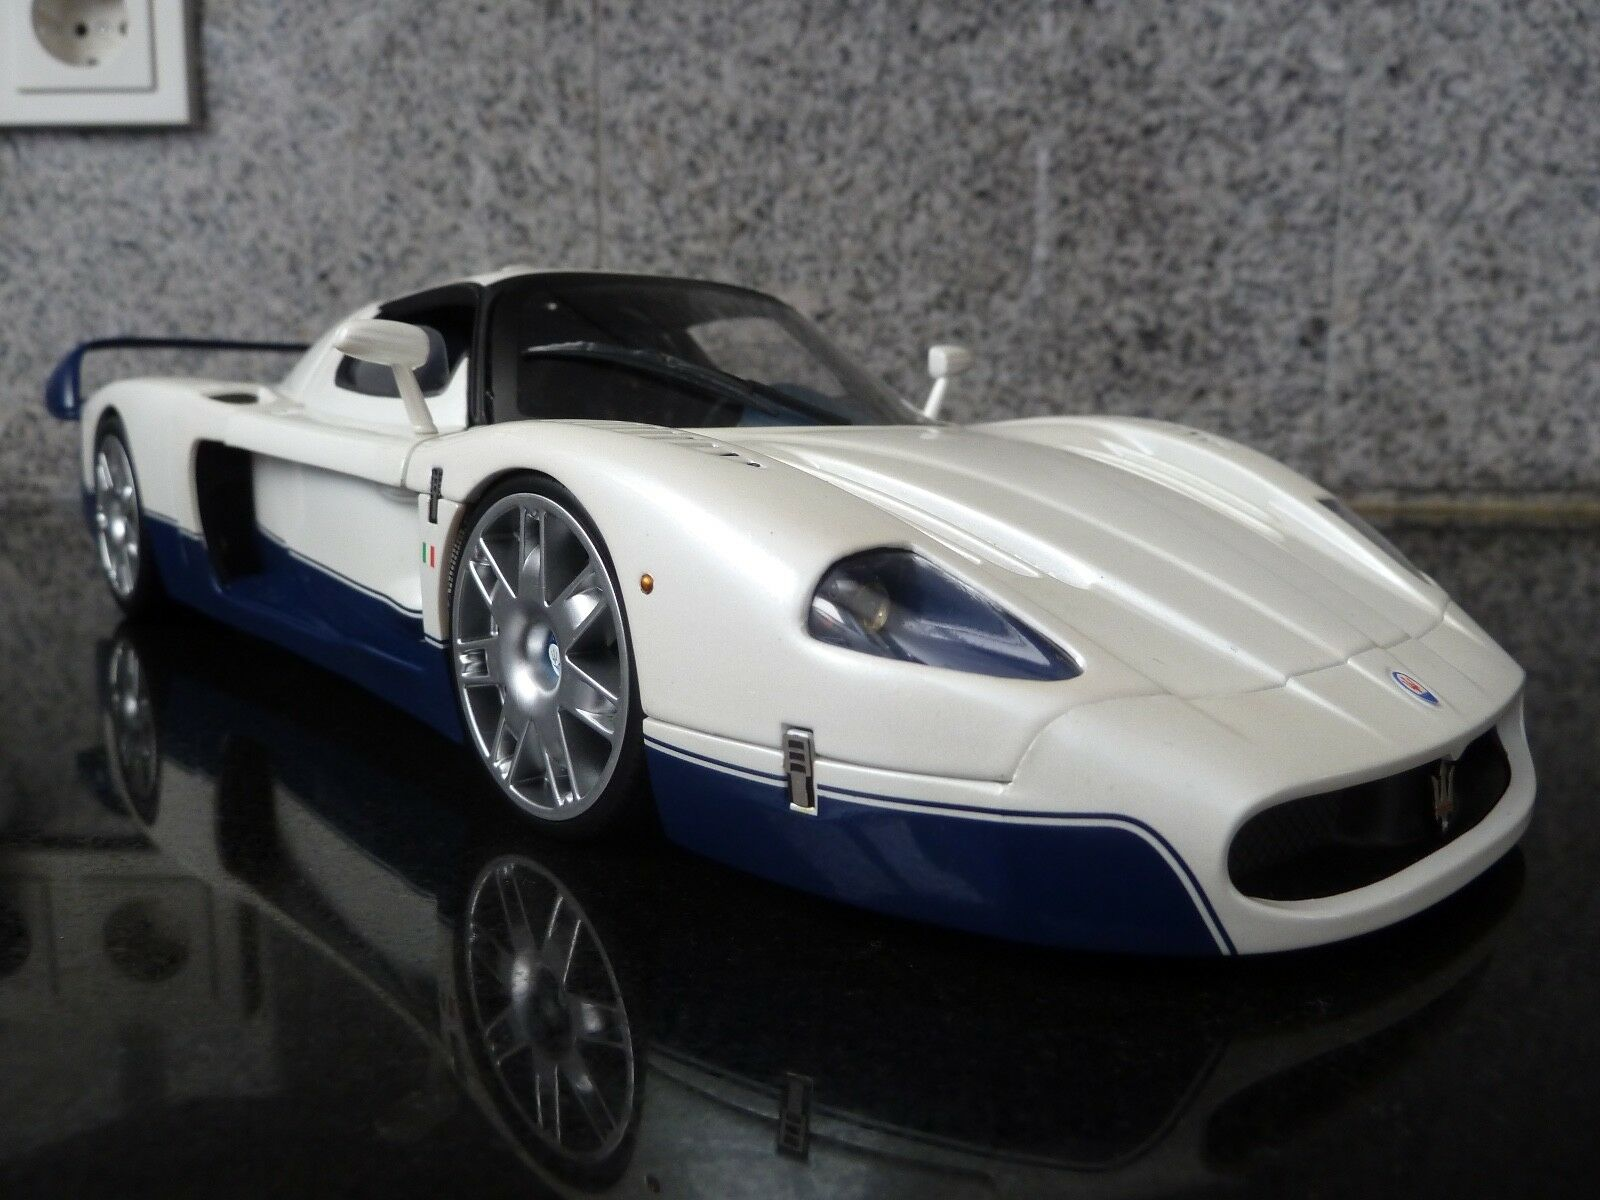 1 18 Hot Wheels Elite, Maserati MC 12, HW